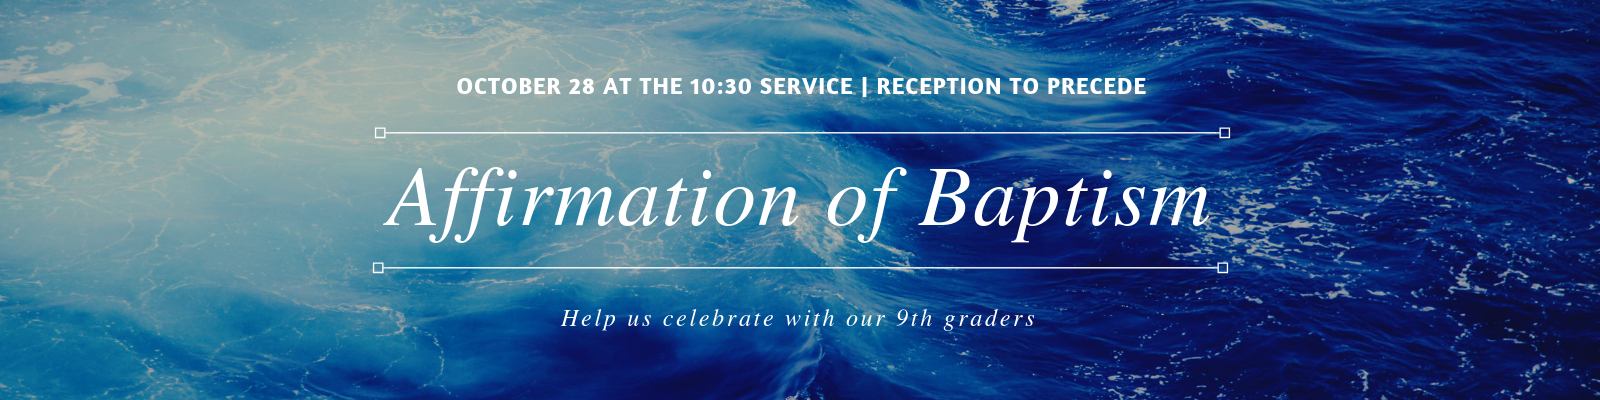 Image of stormy water with the text Affirmation of Baptism October 28 at the 10:30 service, reception to precede. Help us celebrate with our 9th graders.